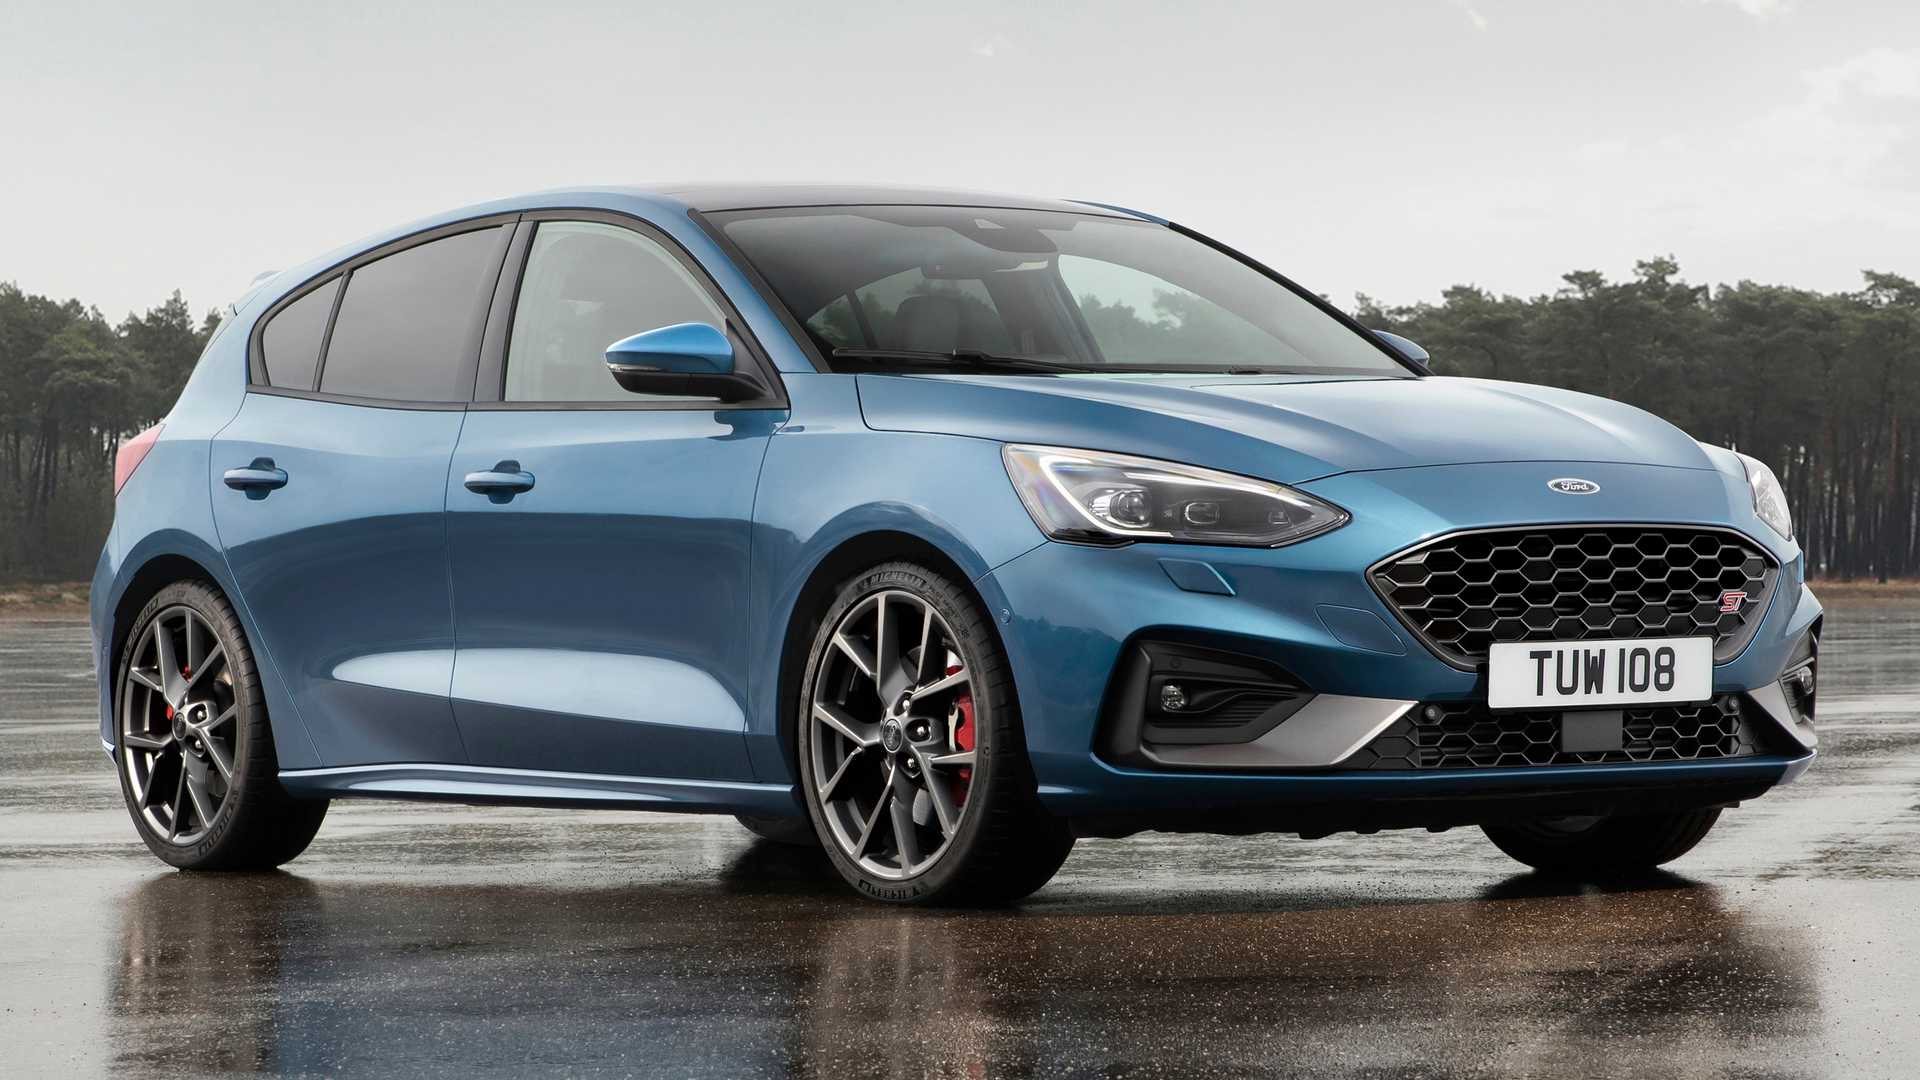 Ford Focus St Revealed With Powerful Gasoline Diesel Engines